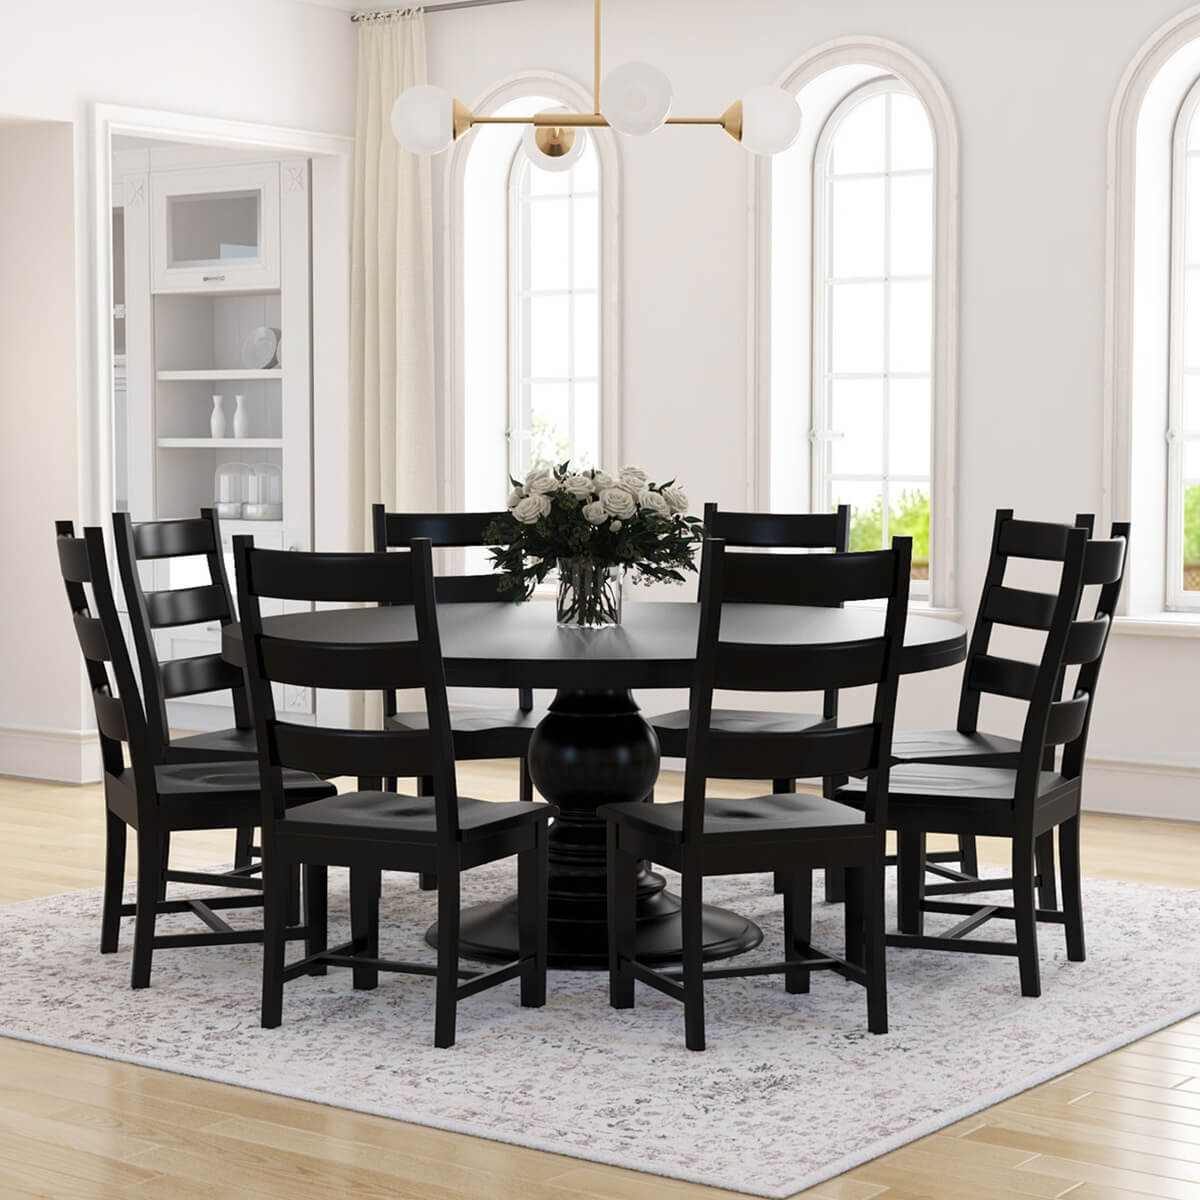 Rustic Dining Room Table Set: Nottingham Rustic Solid Wood Black Round Dining Room Table Set